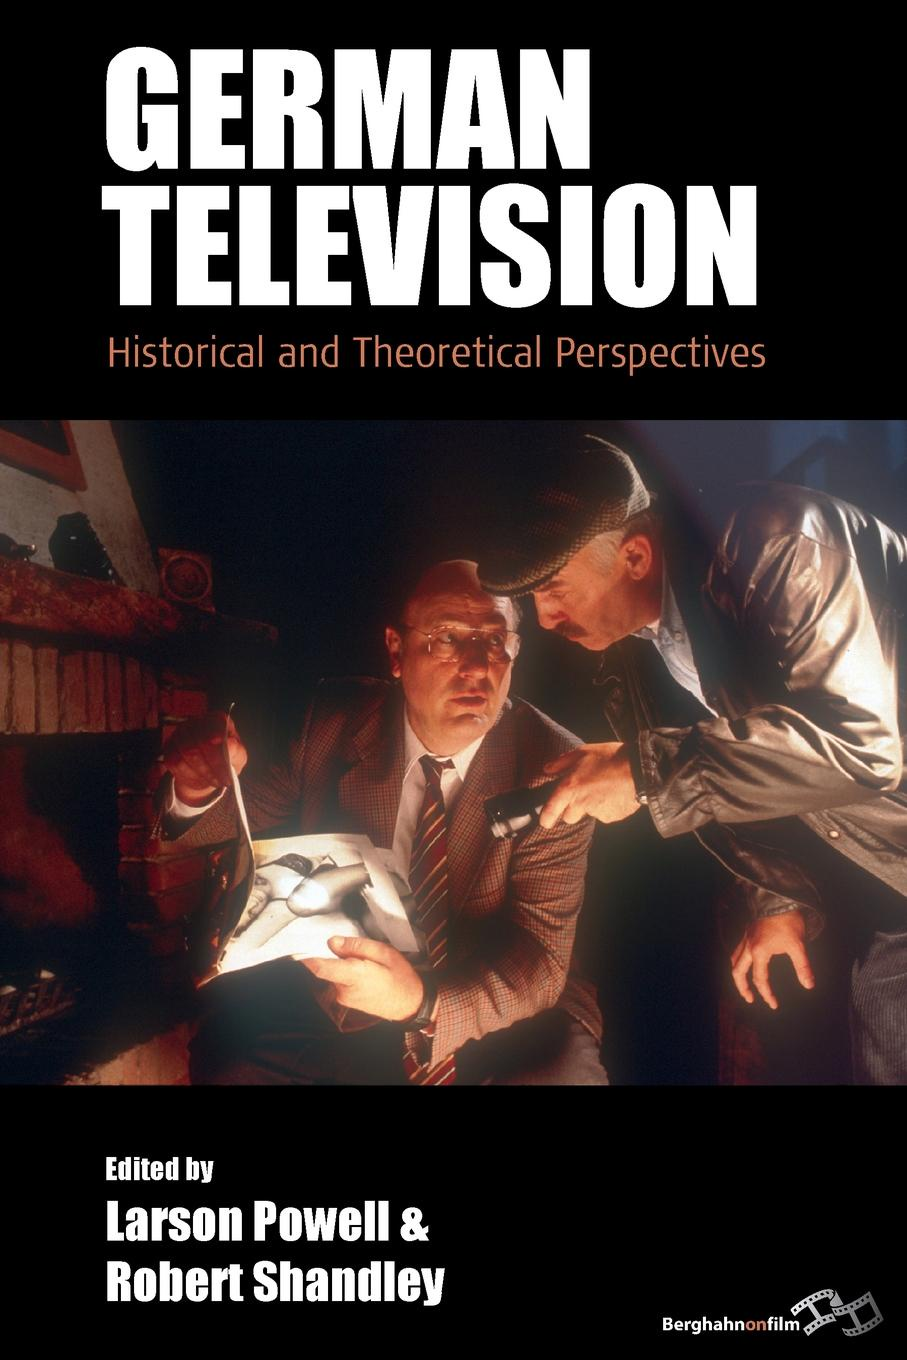 German Television. Historical and Theoretical Perspectives